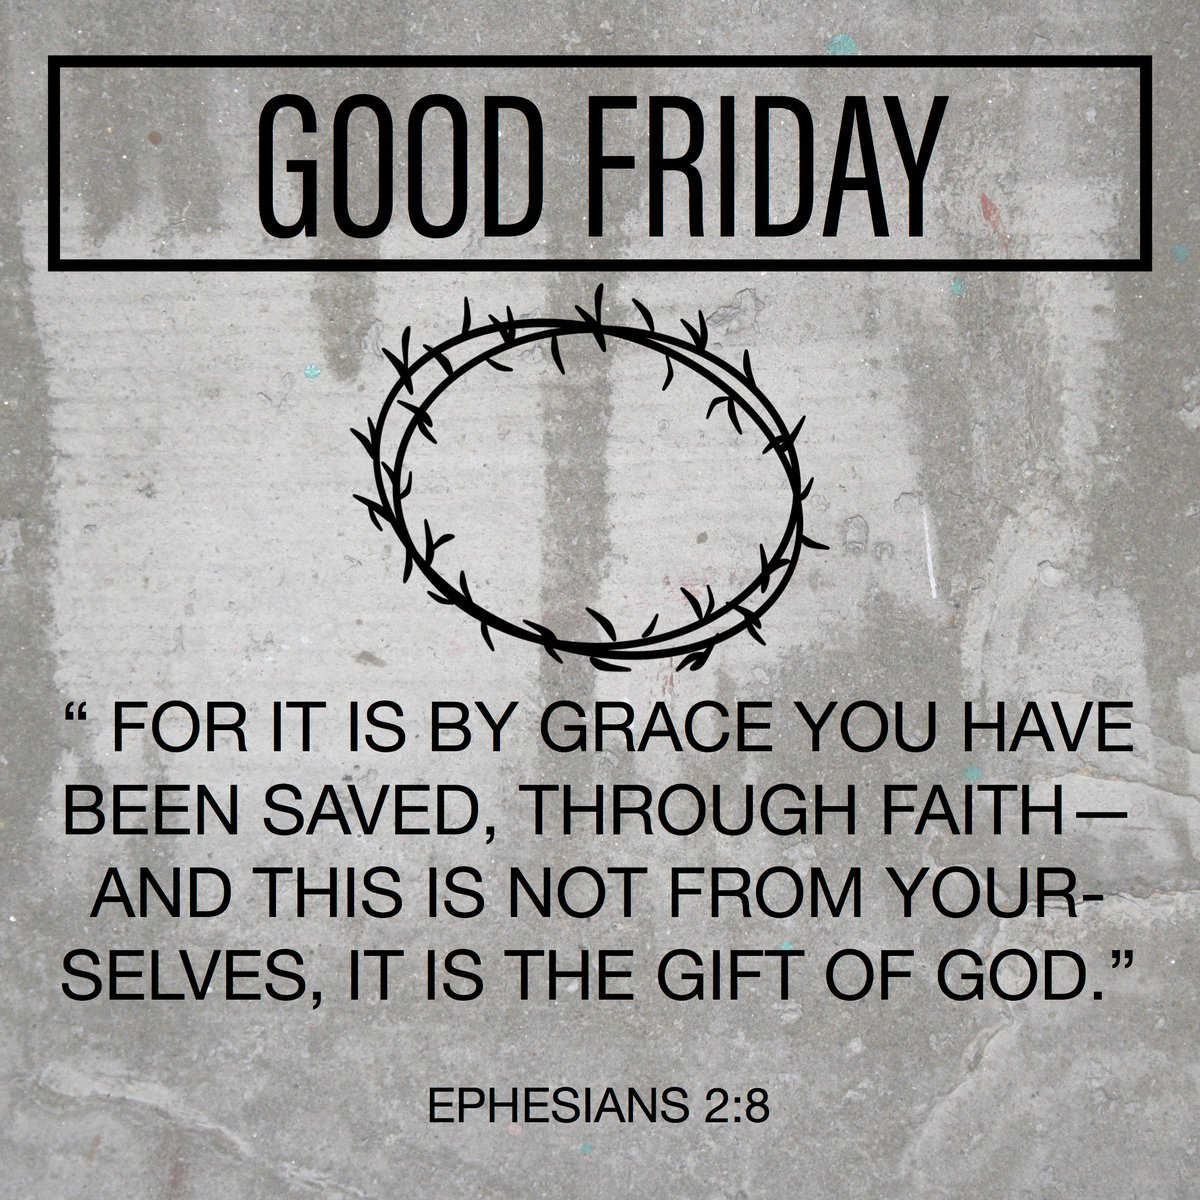 Such an important reminder this time of year, through GRACE we have been saved! #gracewins #GoodFriday https://t.co/fb7FbNpgEg